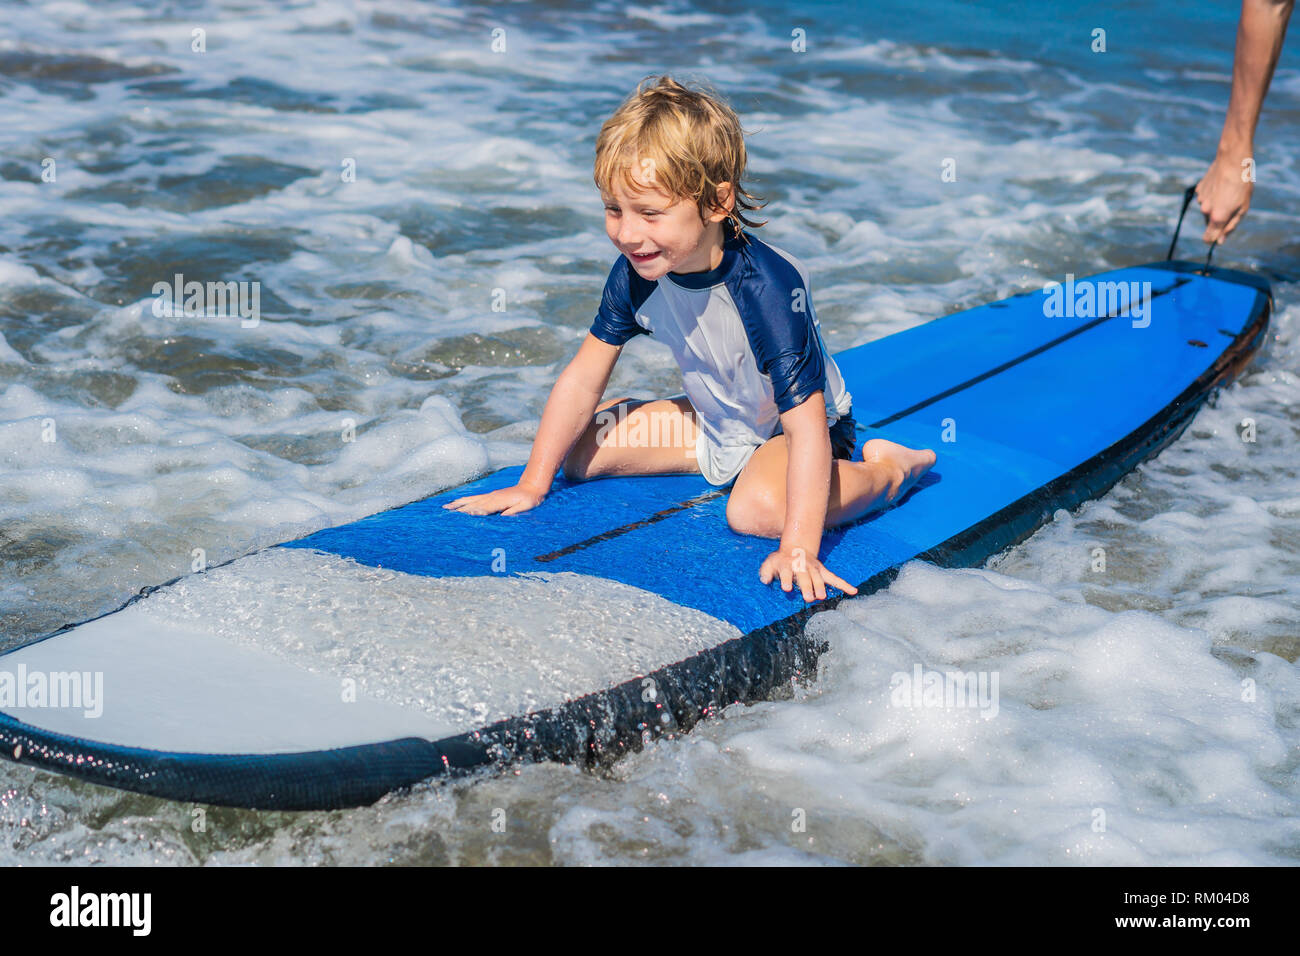 405c1cb39b Happy baby boy - young surfer ride on surfboard with fun on sea waves.  Active